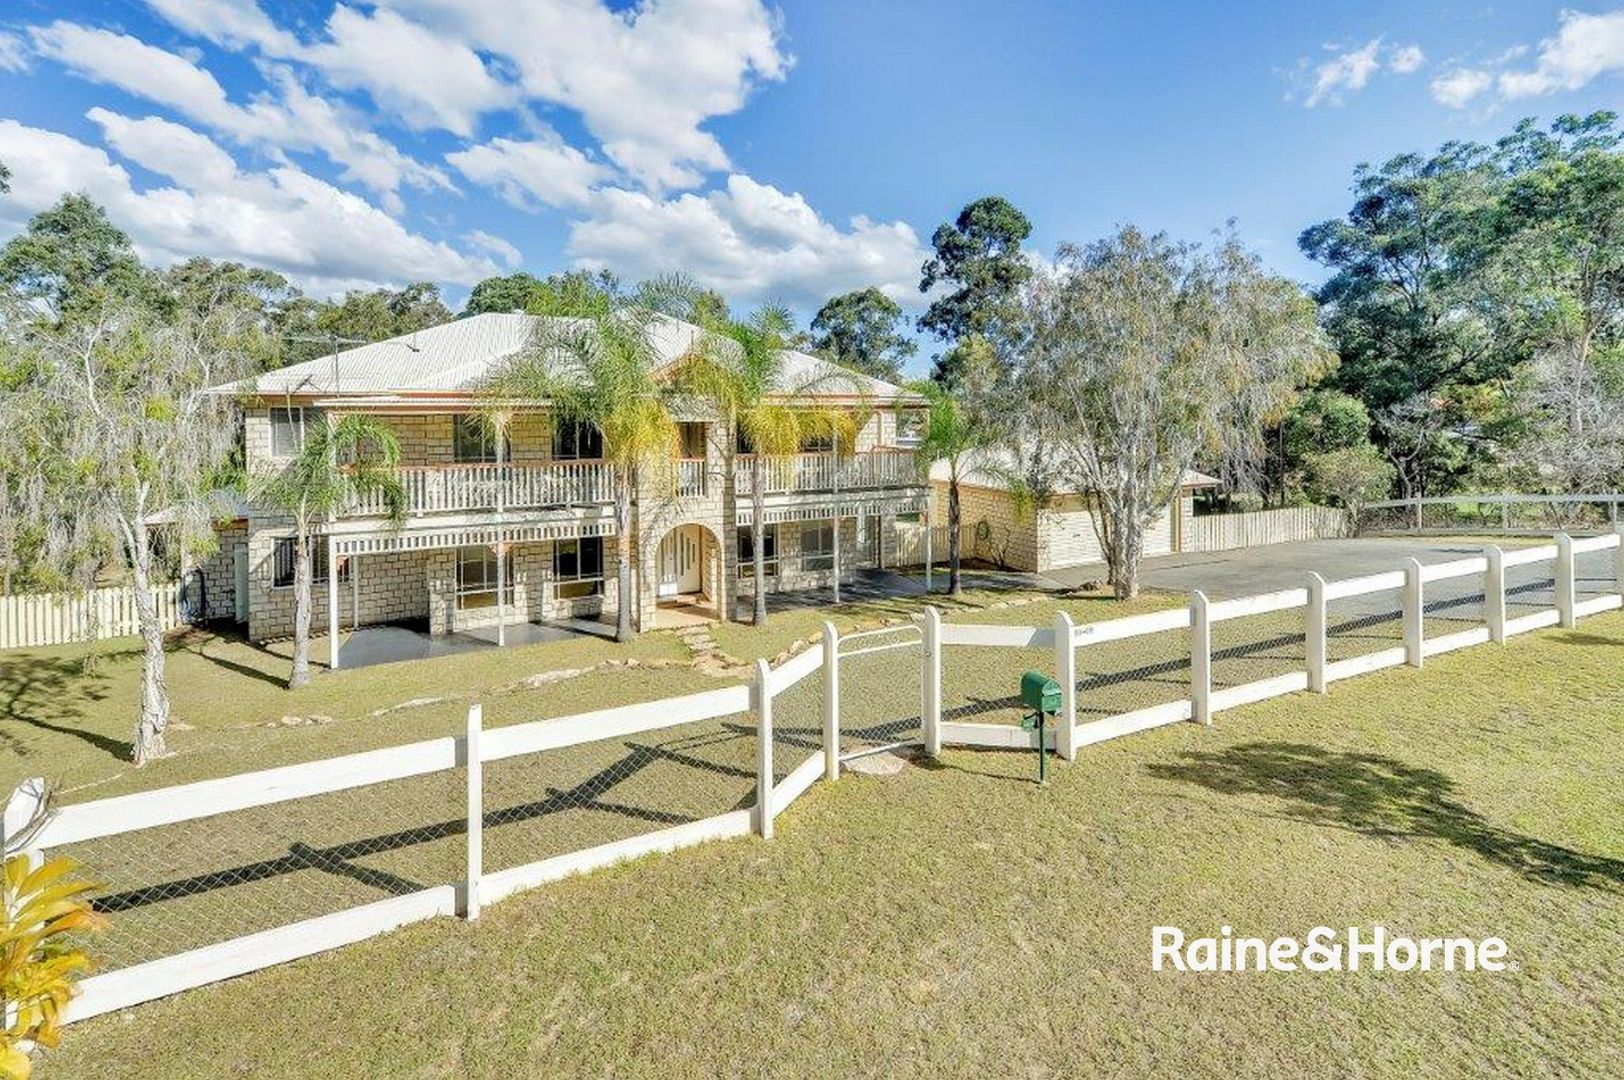 93-95 Silvereye Cr, Greenbank QLD 4124, Image 0